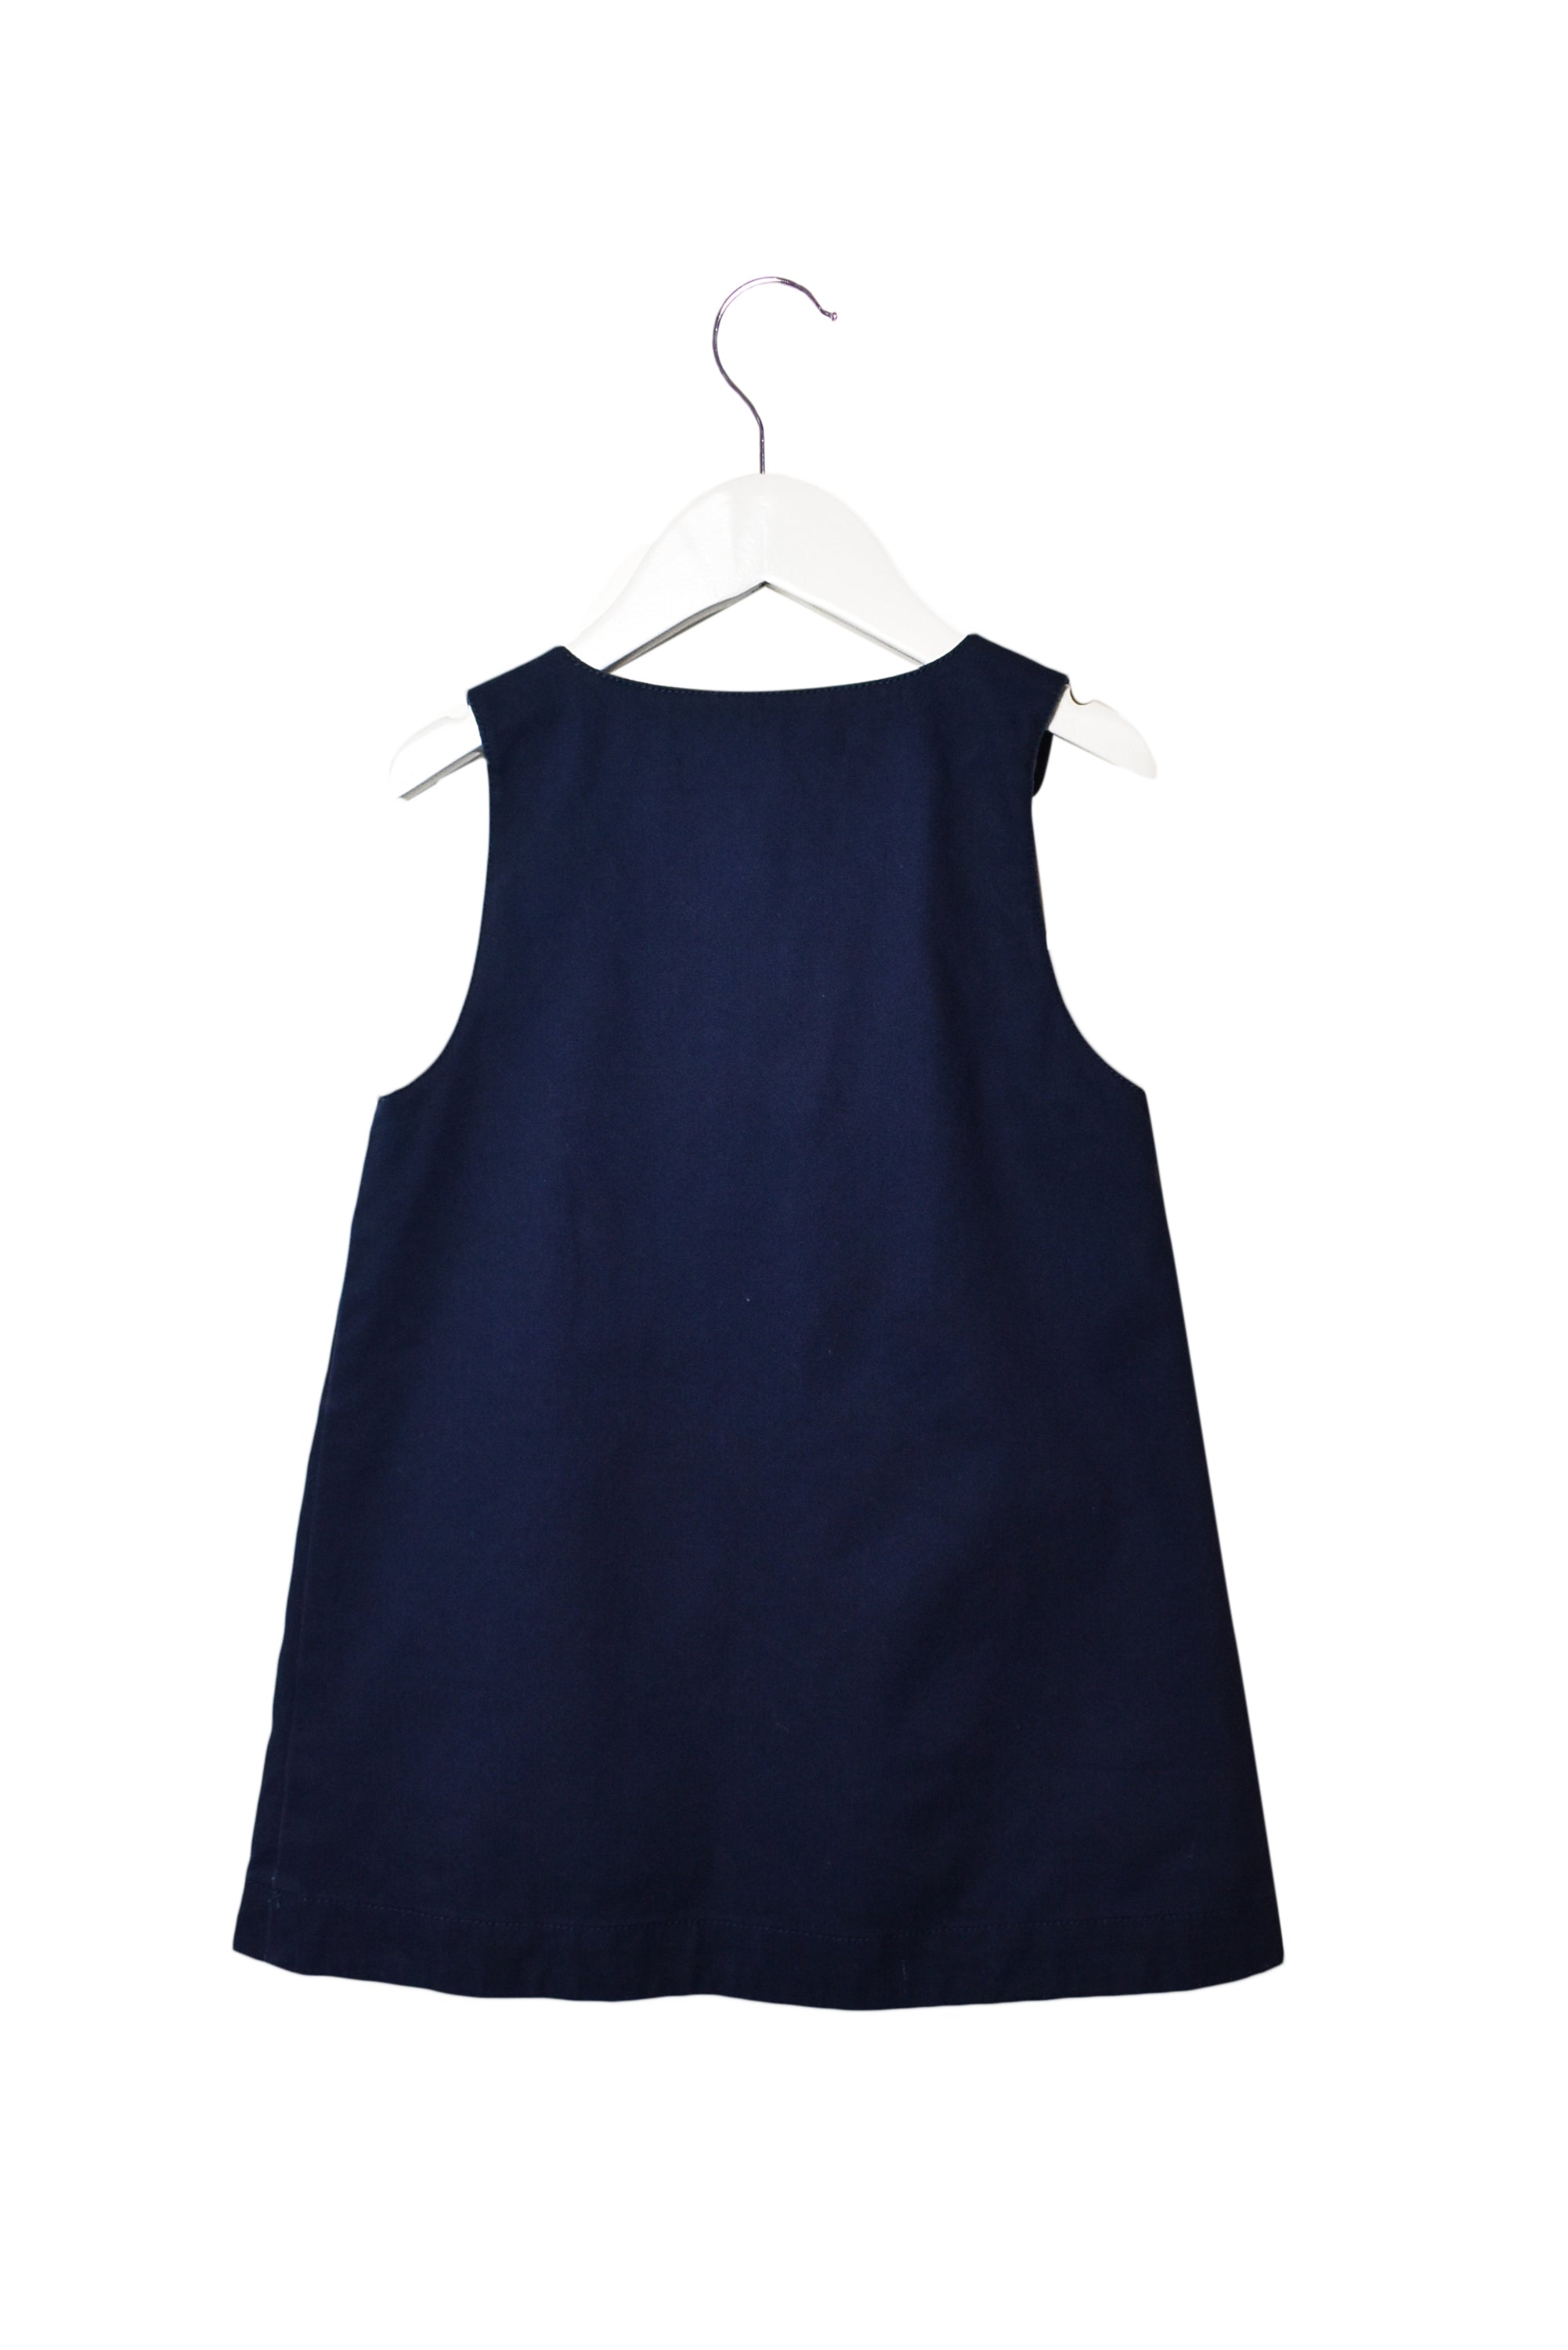 10008436 Noukie's Kids~Dress 4T at Retykle